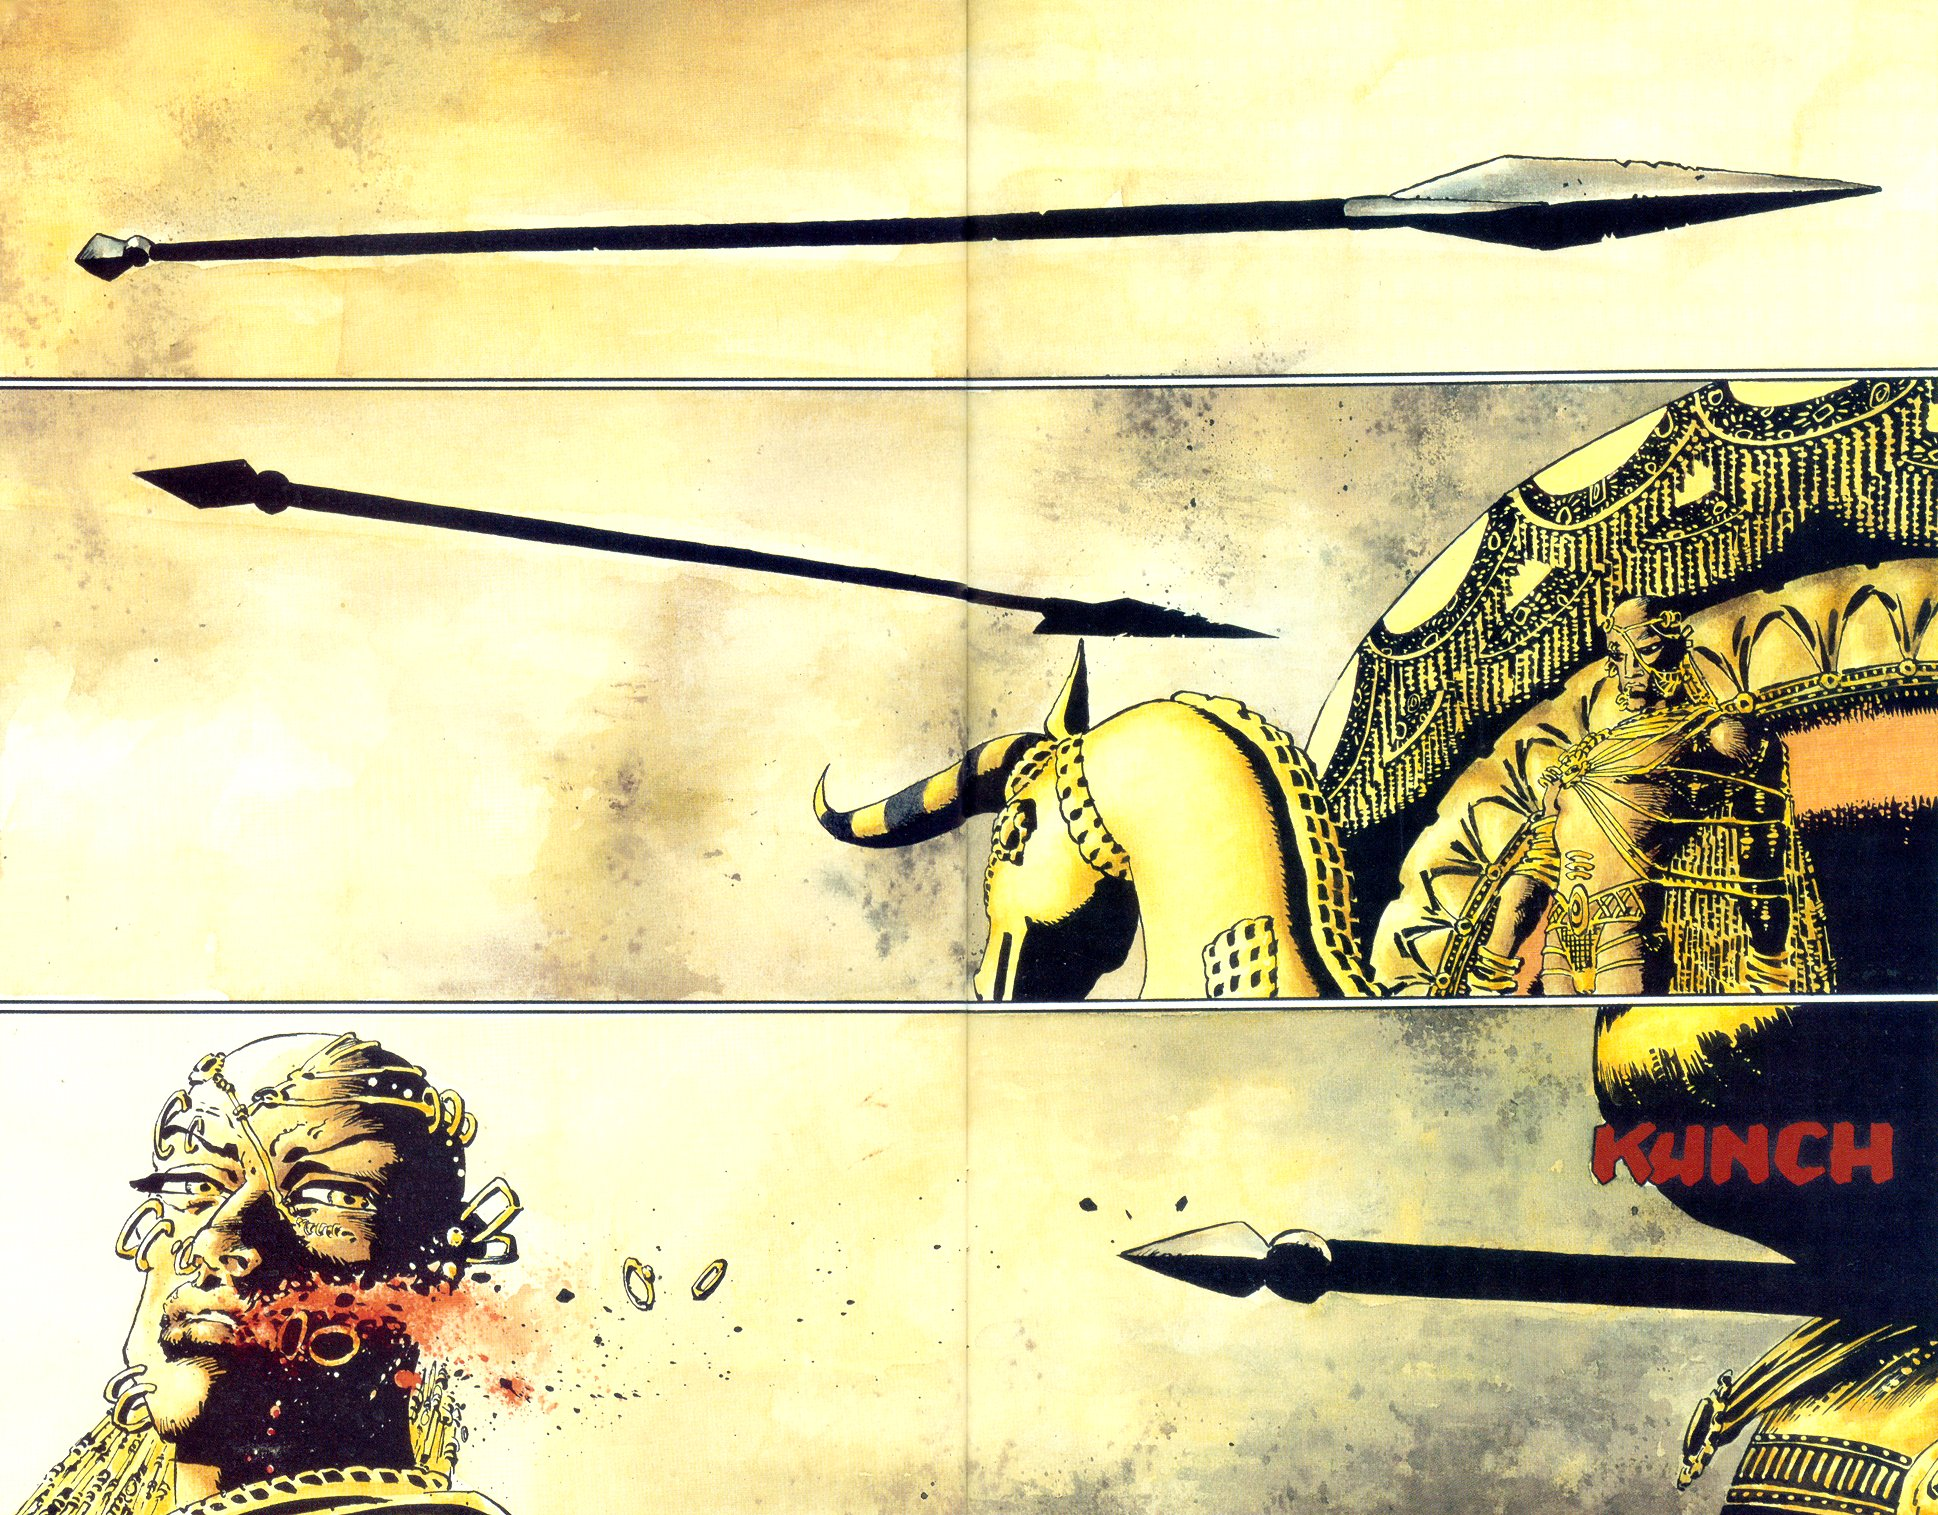 In '300', King Leonidas' arrow injures Xerxes' right cheek. Photo/Dark Horse Comics.